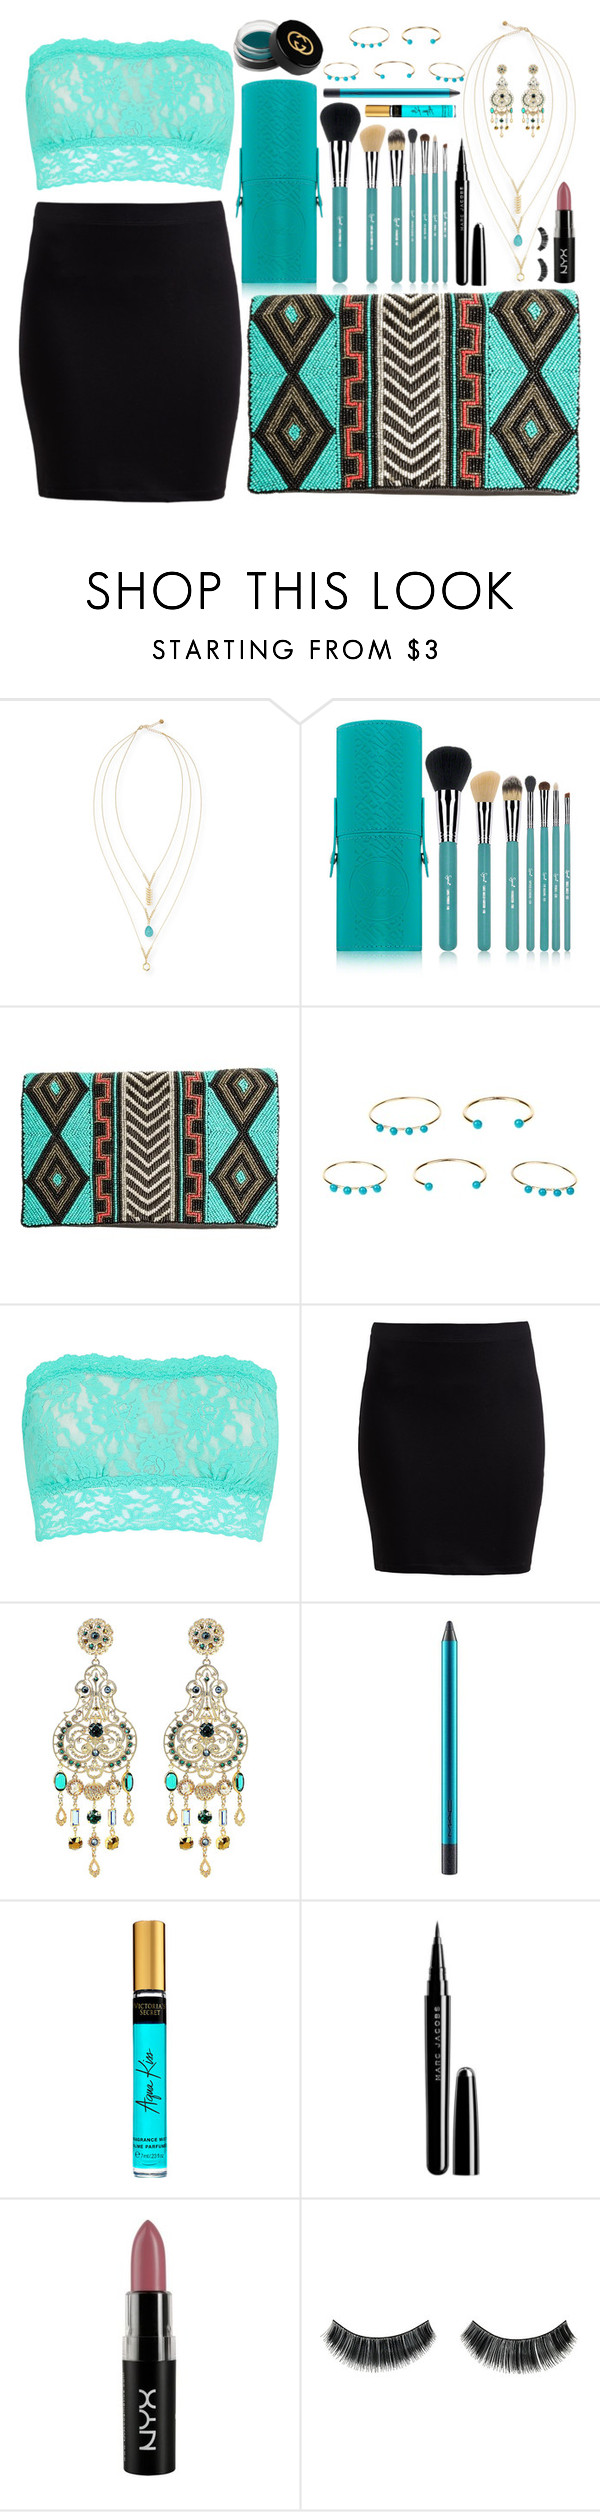 """Mix and Match!"" by marianandrwos ❤ liked on Polyvore featuring Jules Smith, Sigma Beauty, From St Xavier, Isabel Marant, Hanky Panky, Zalando, Claudia Baldazzi, MAC Cosmetics, Marc Jacobs and NYX"